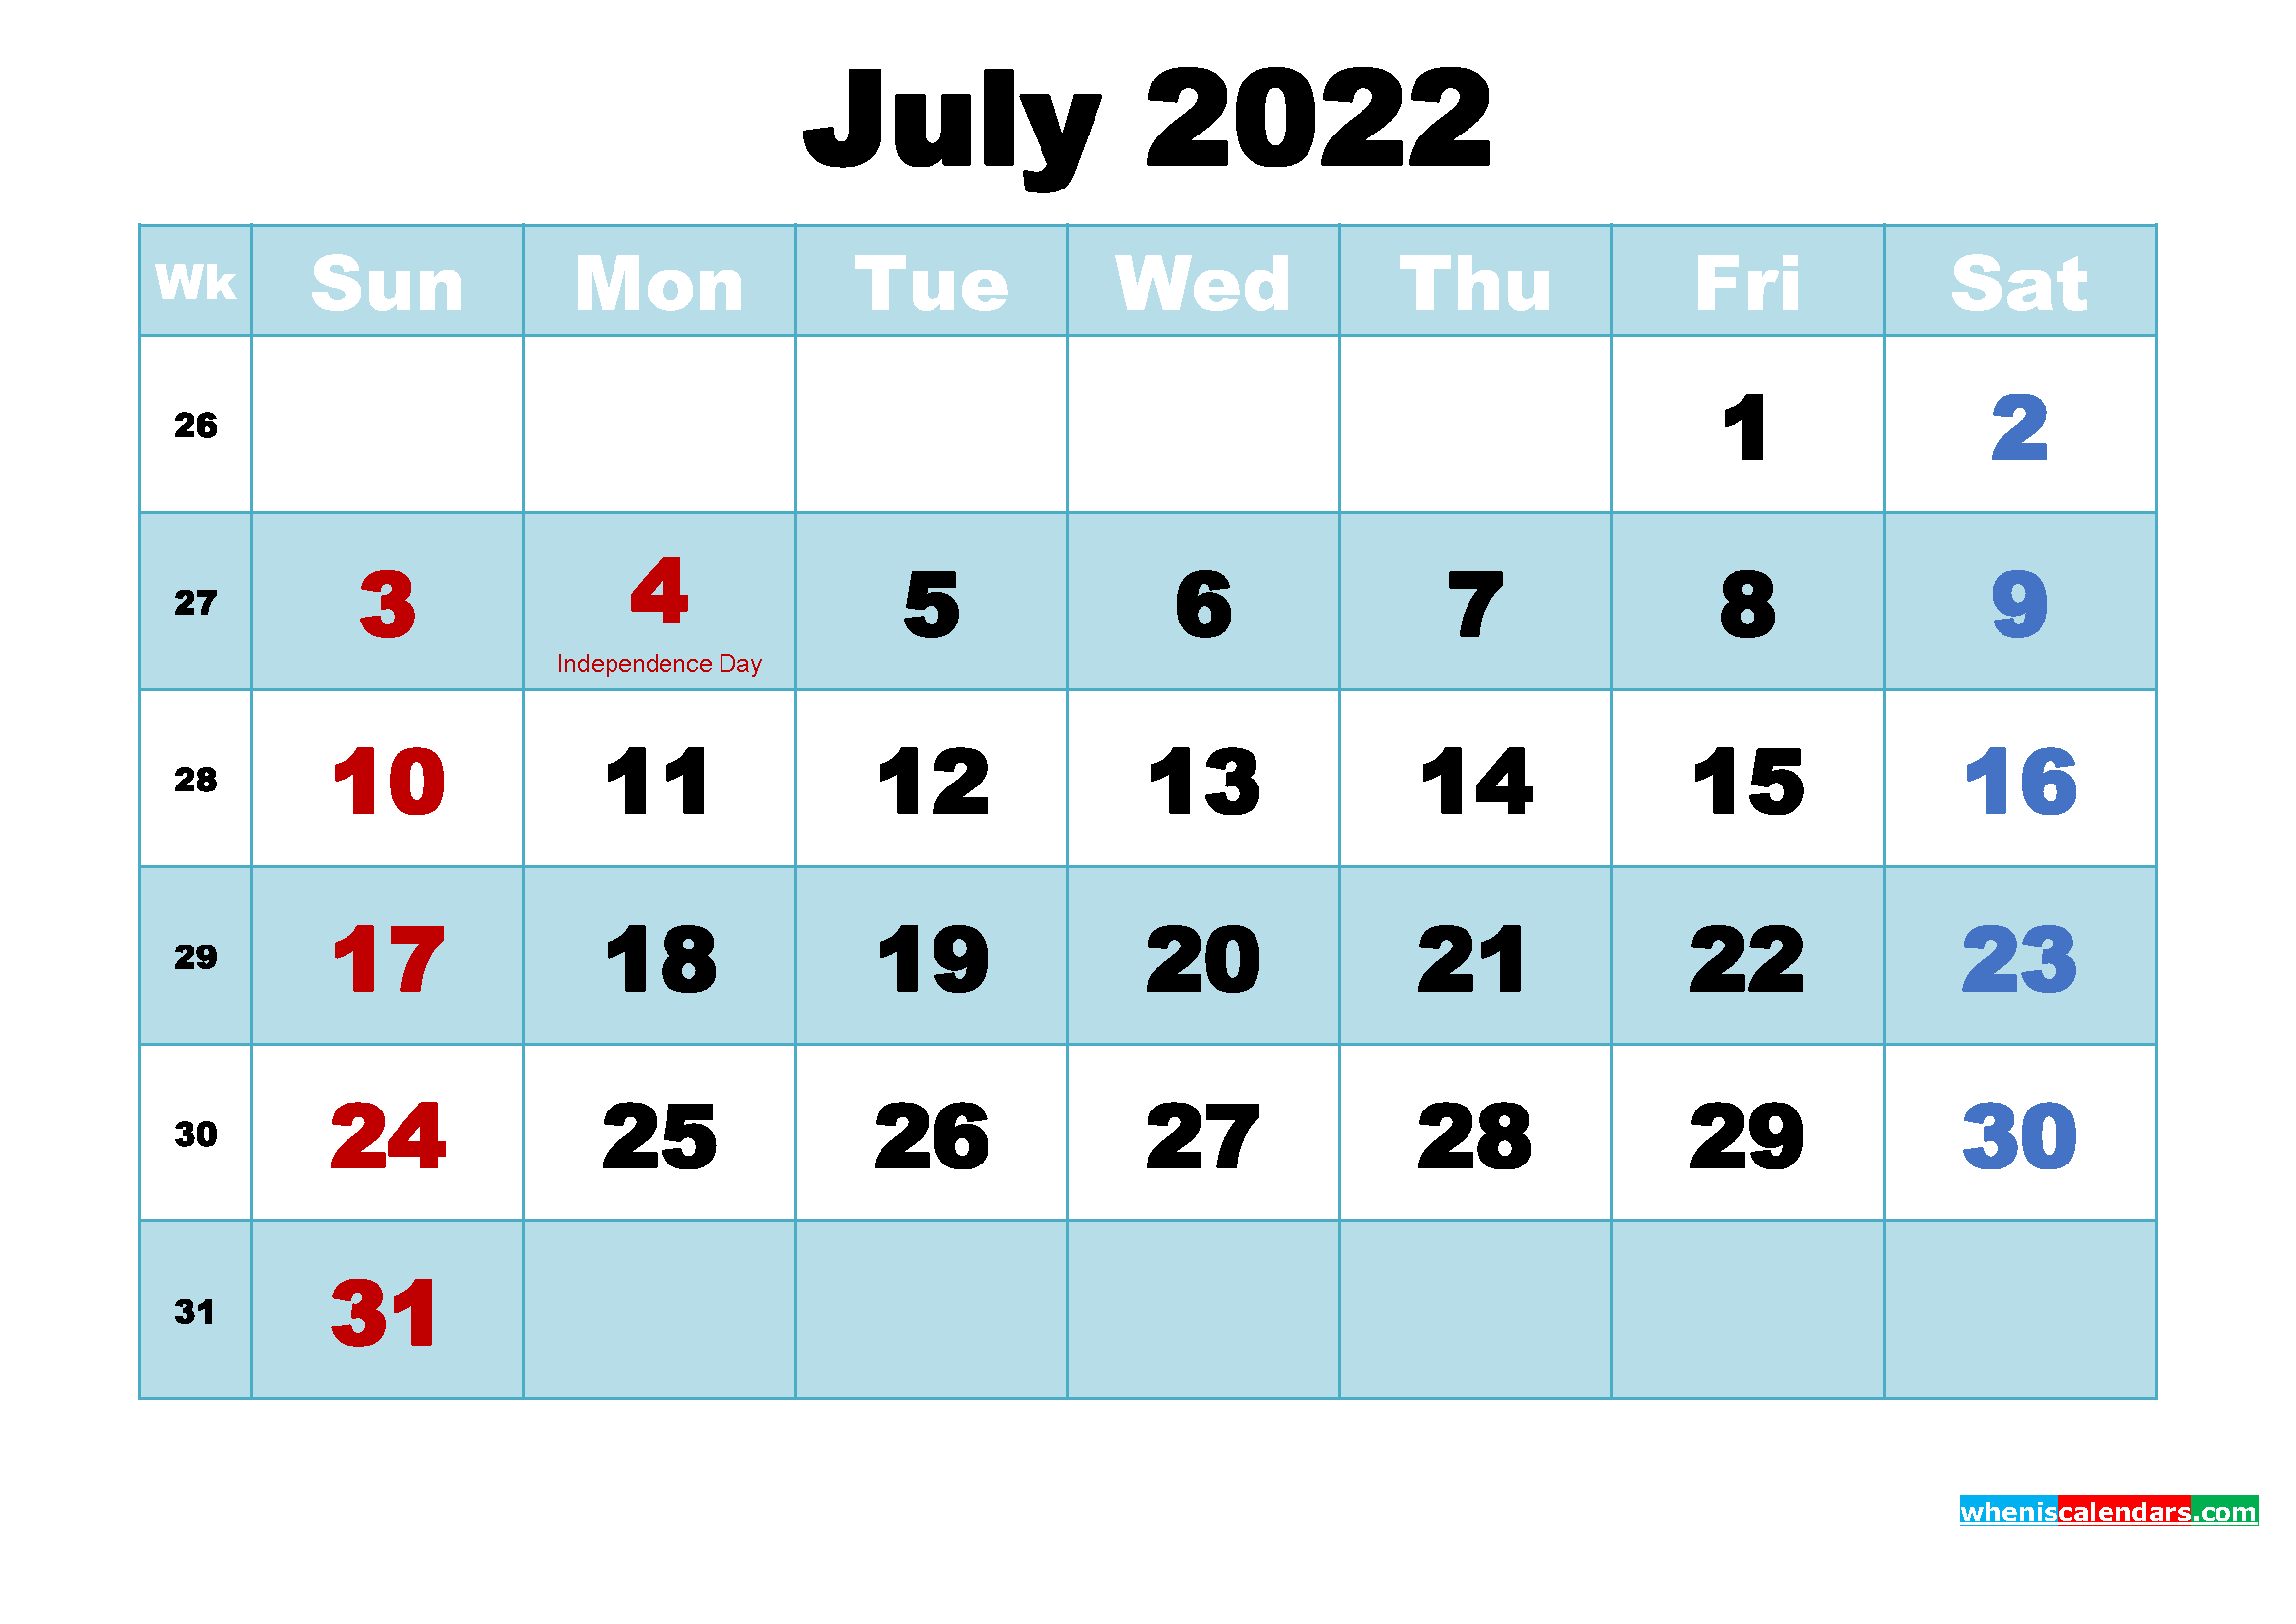 July 2022 Free Printable Calendar with Holidays